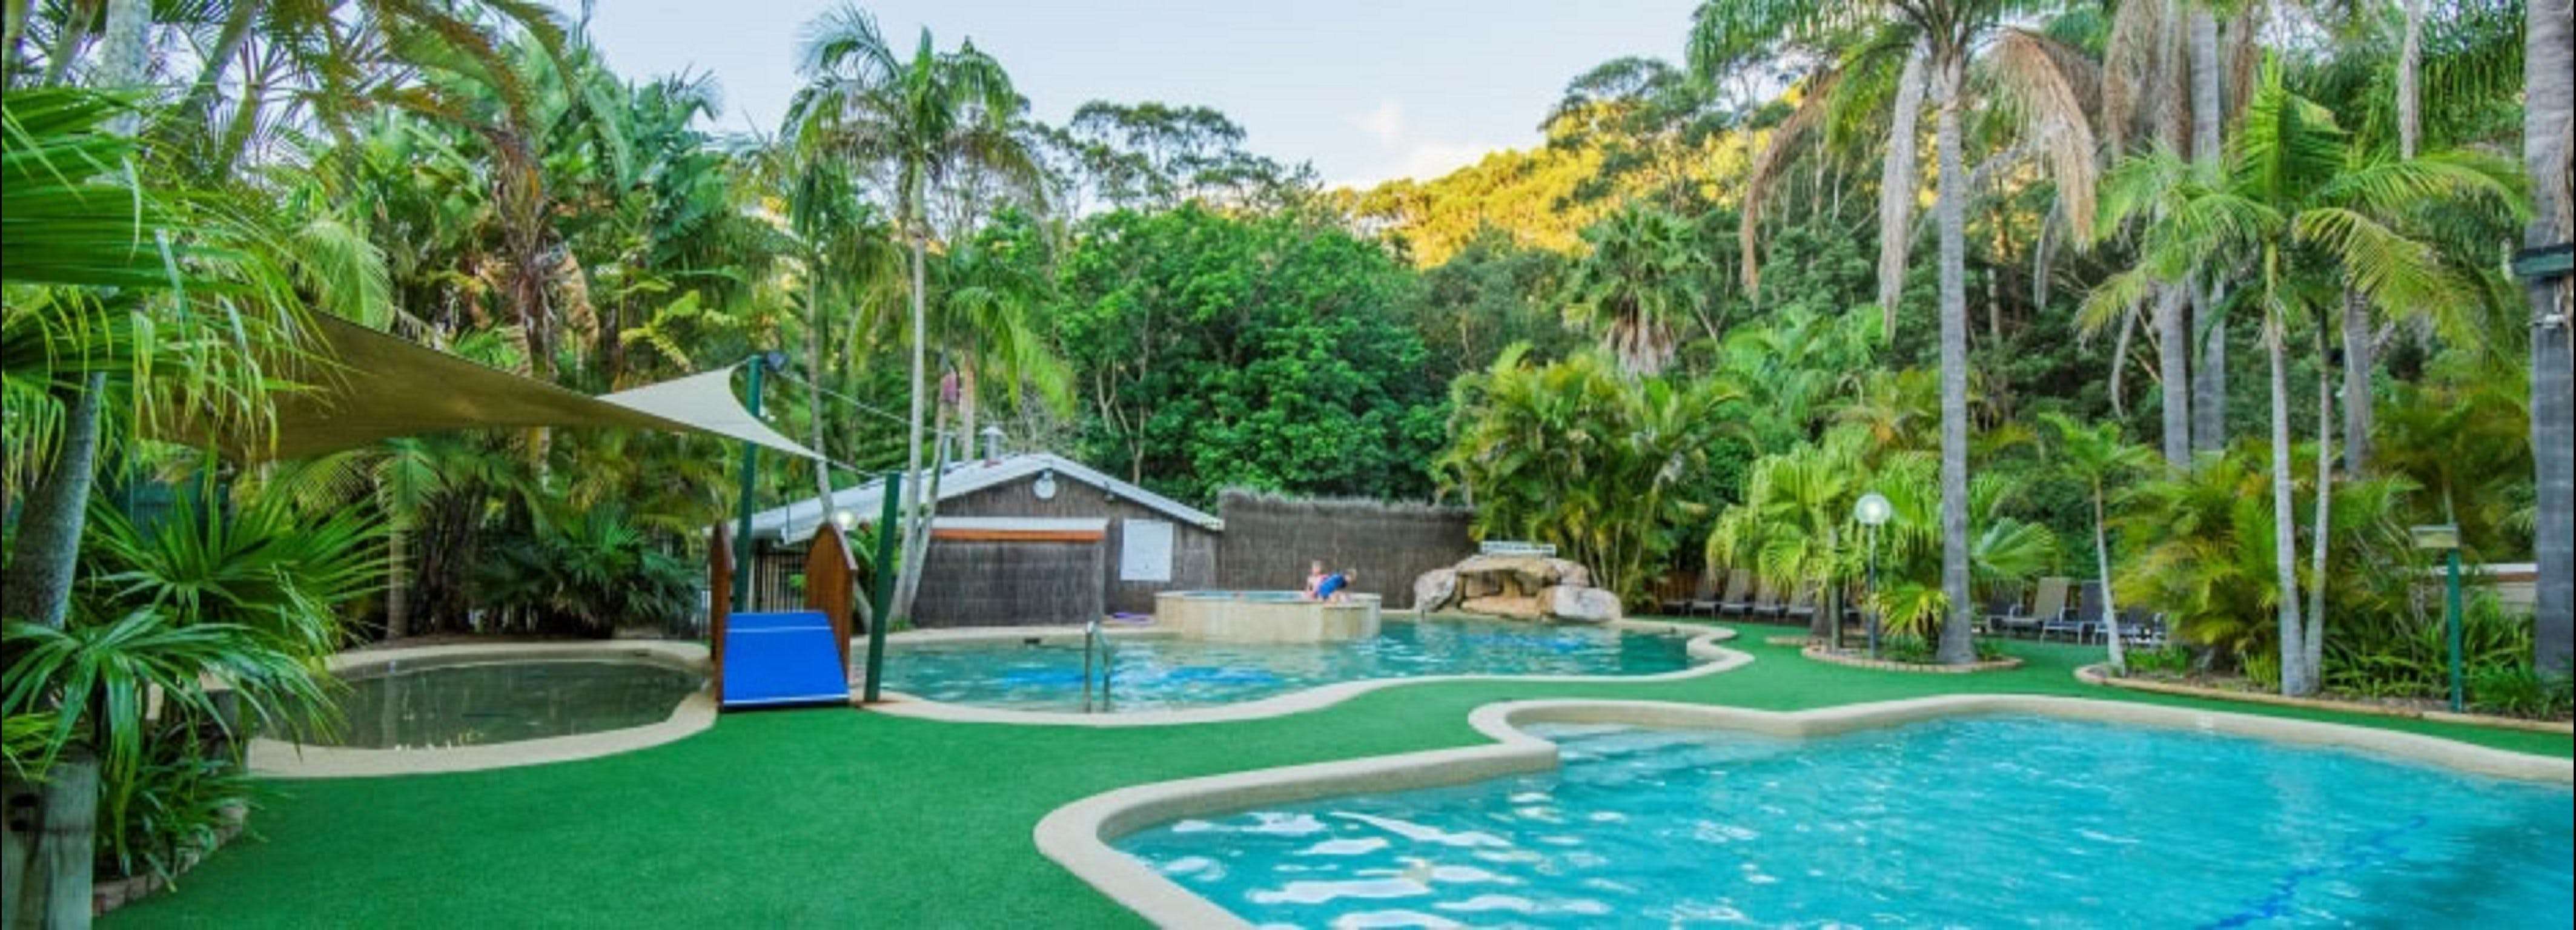 The Palms at Avoca - Accommodation in Brisbane